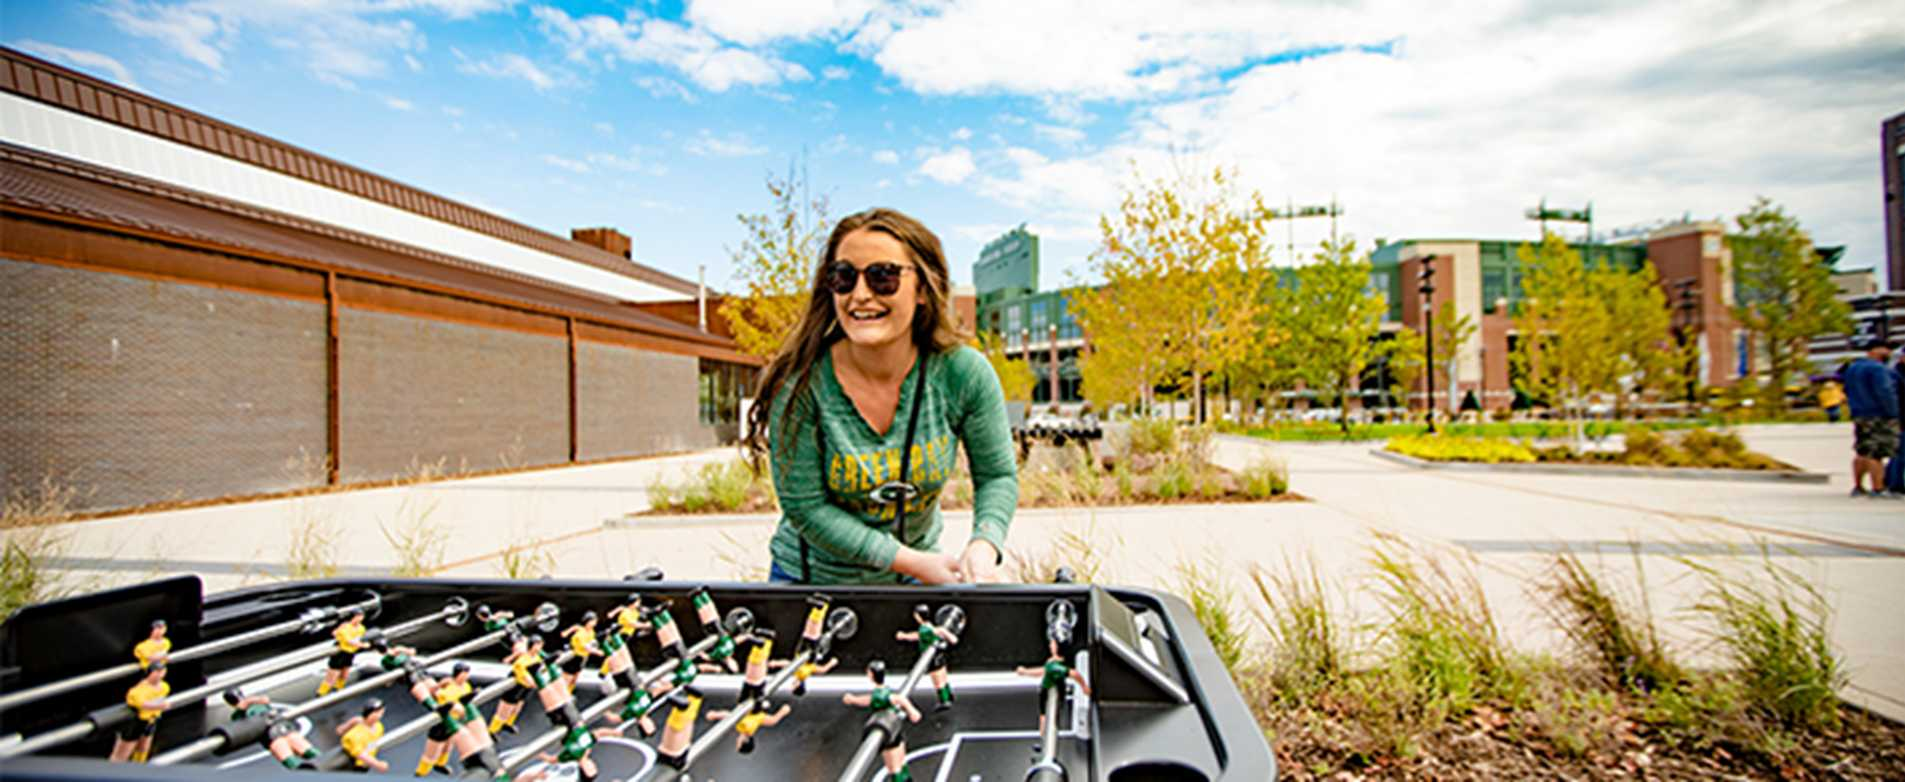 Foosball at Lambeau Field